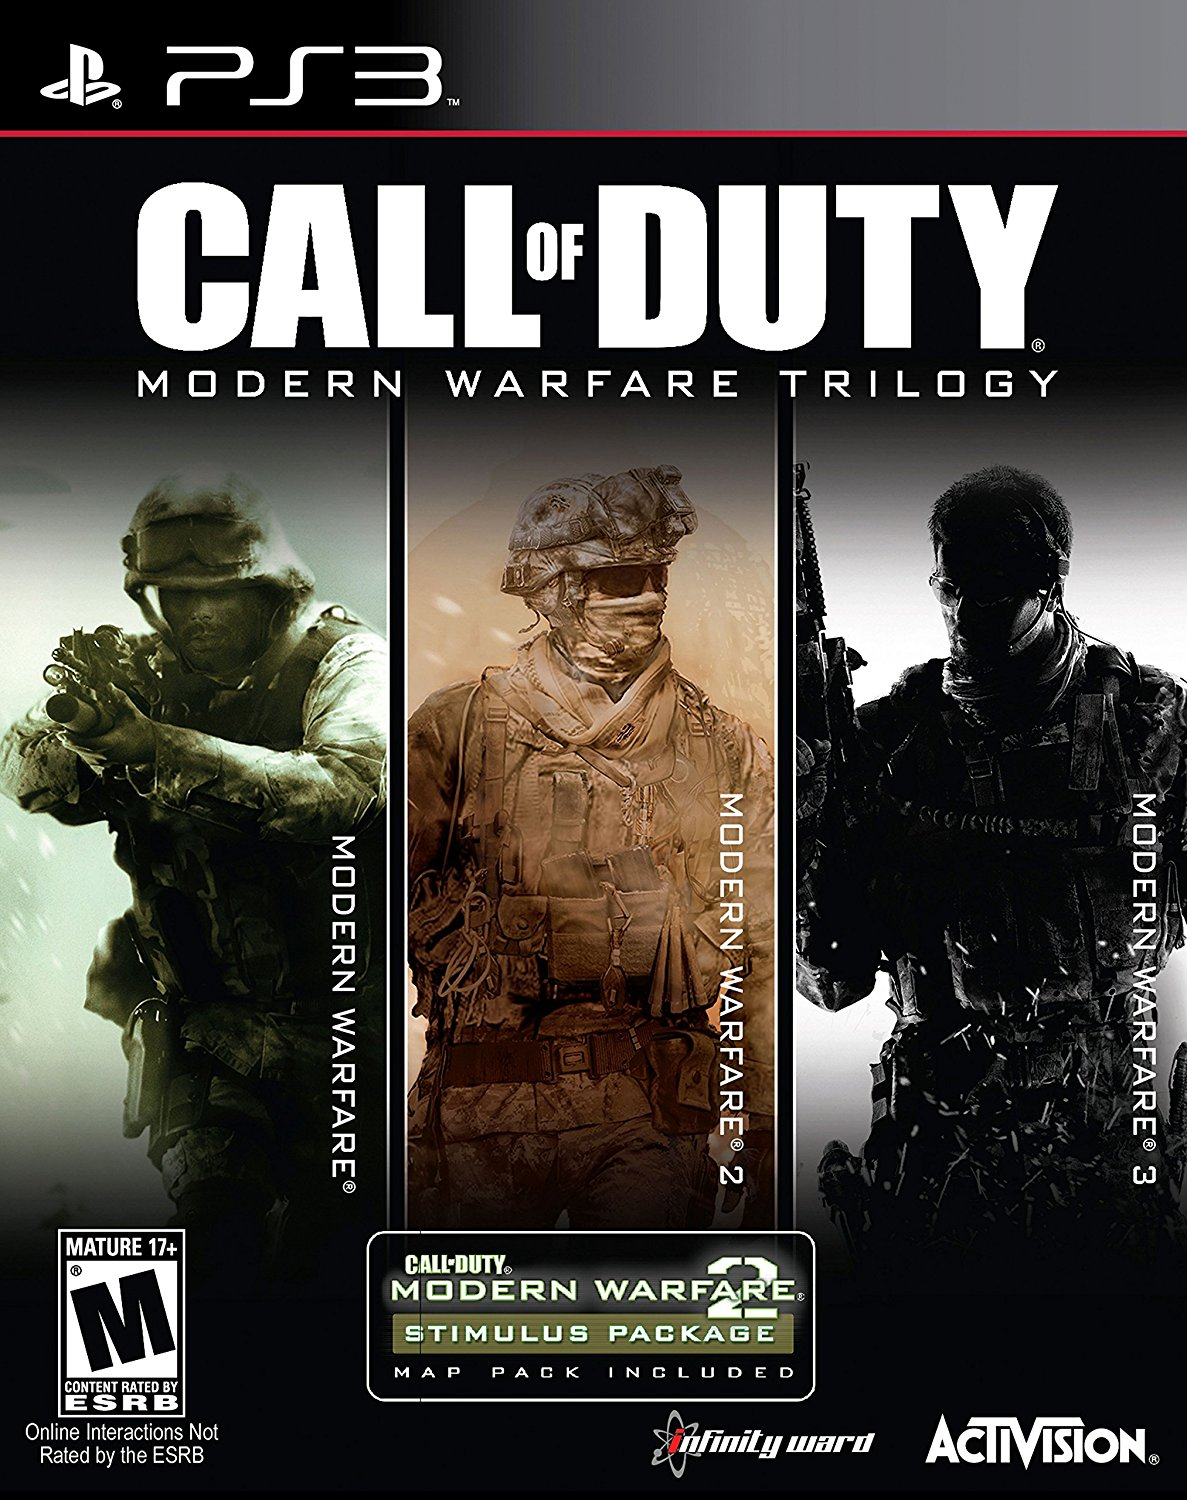 Call Of Duty Modern Warfare Trilogy 3 Discs Activision Xbox 360 Game Ps4 Infinite 047875878068